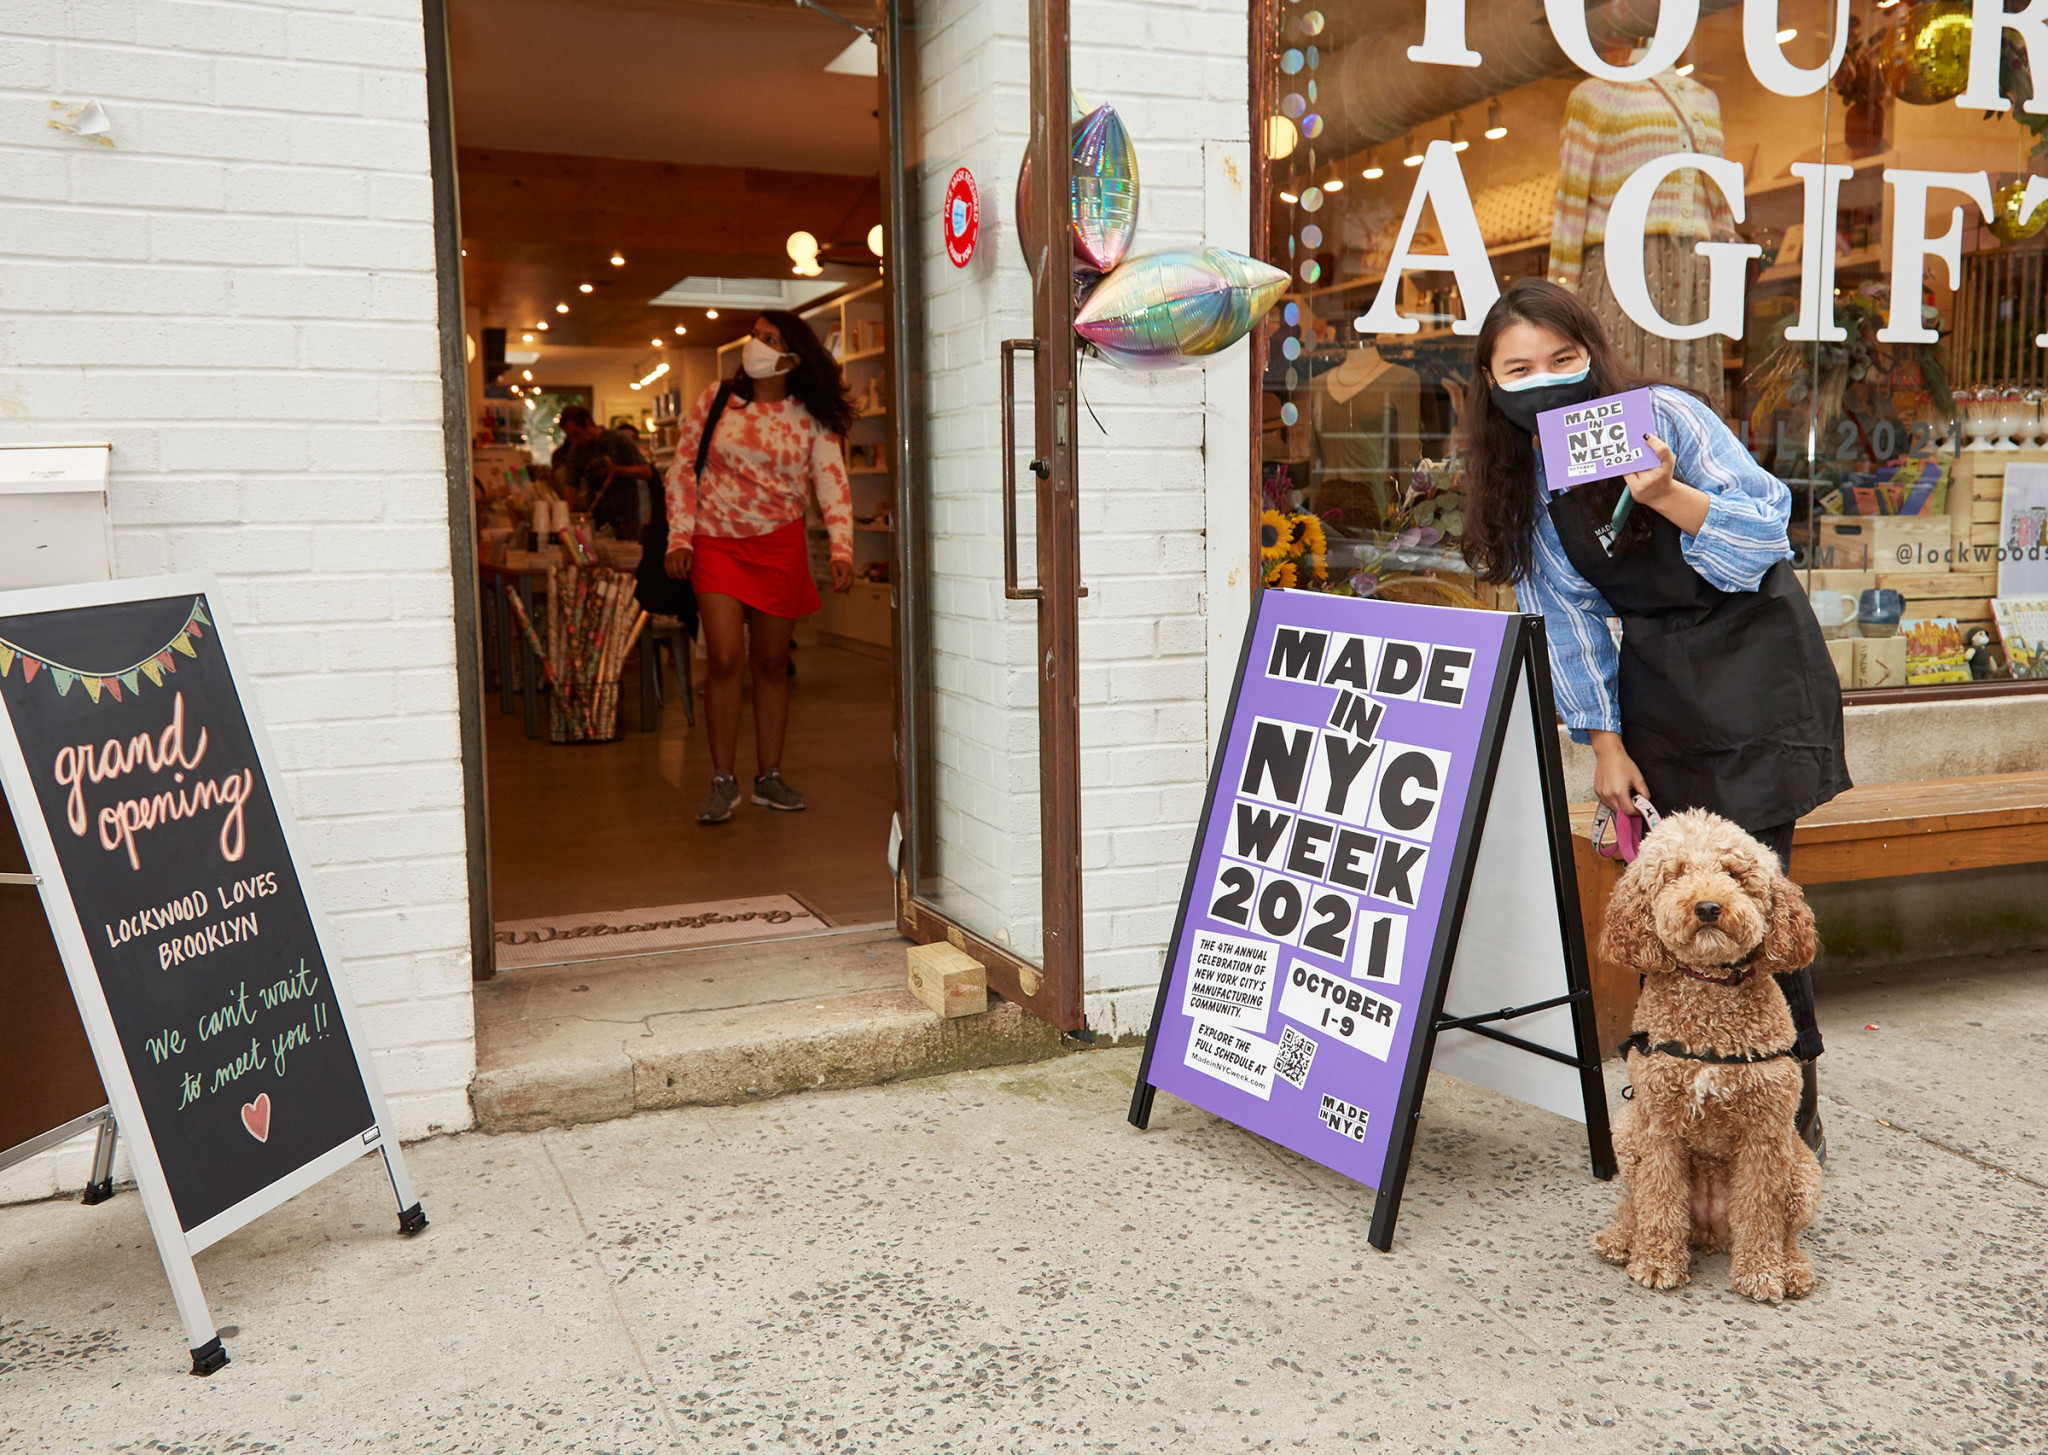 Made in NYC Week at the grand opening of Lockwood in Williamsburg (courtesy Made in NYC/Constance Faulk Photography)